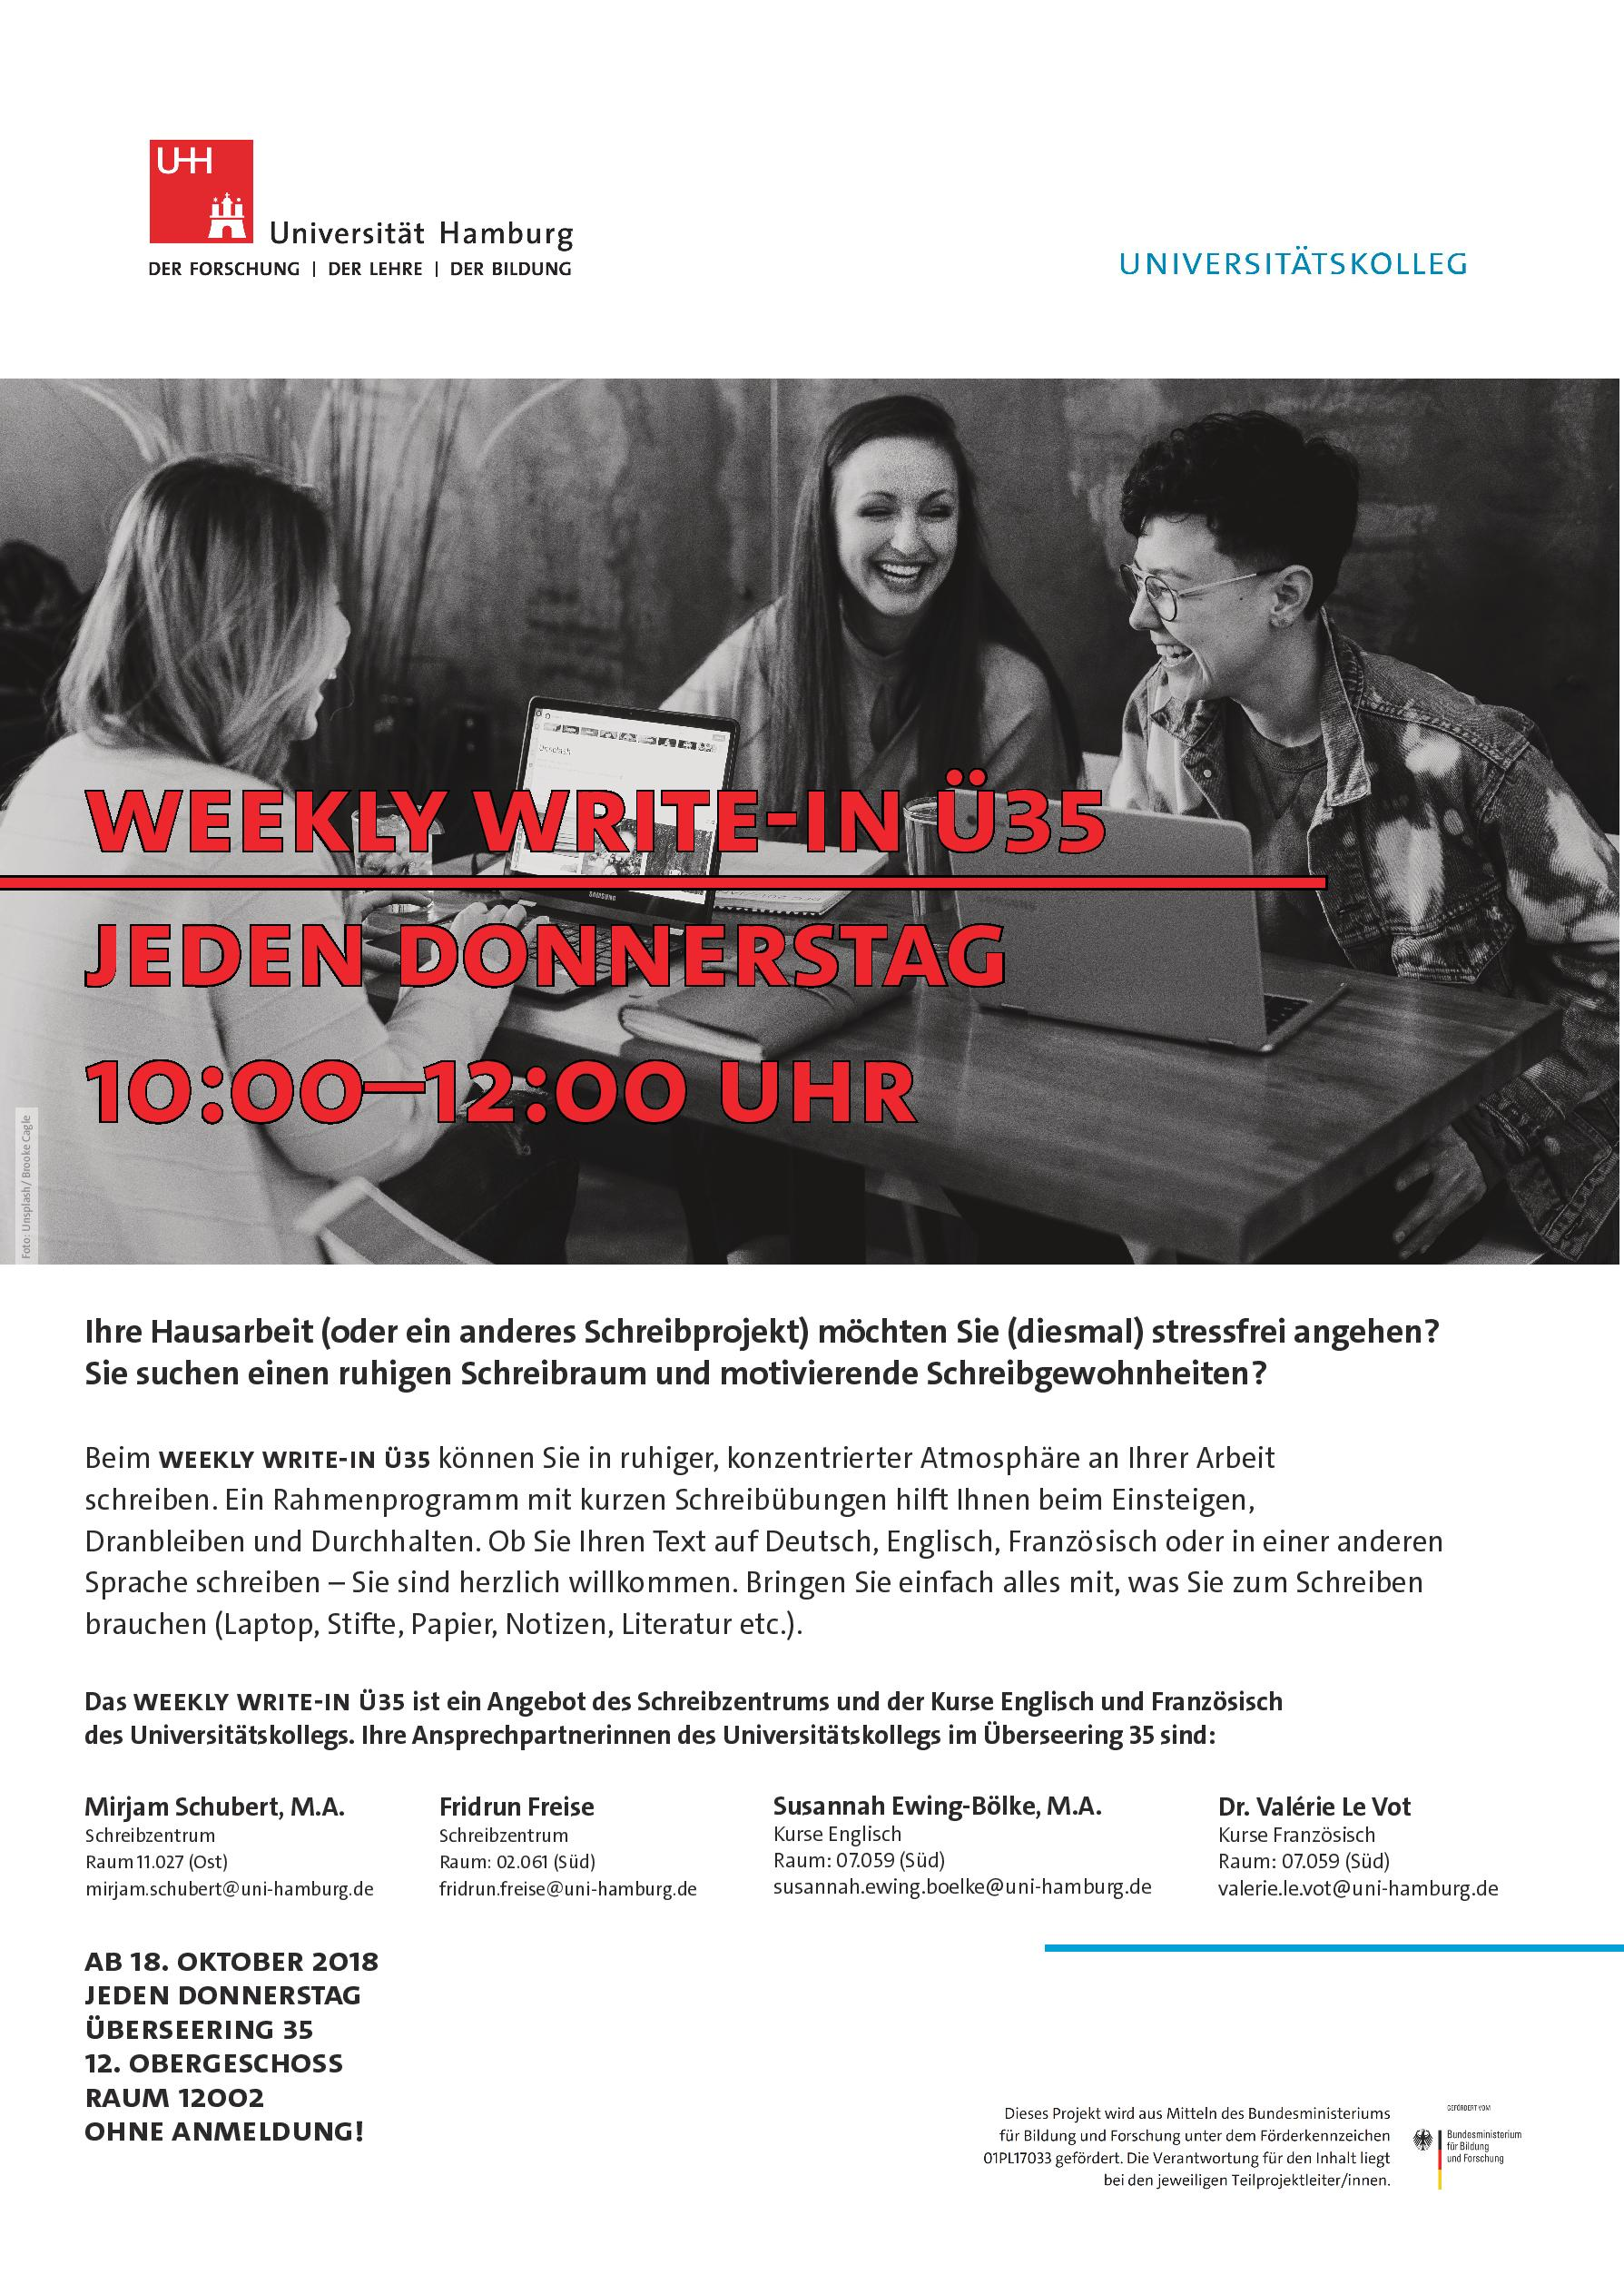 Poster for Weekly Write-In at Überseering 35